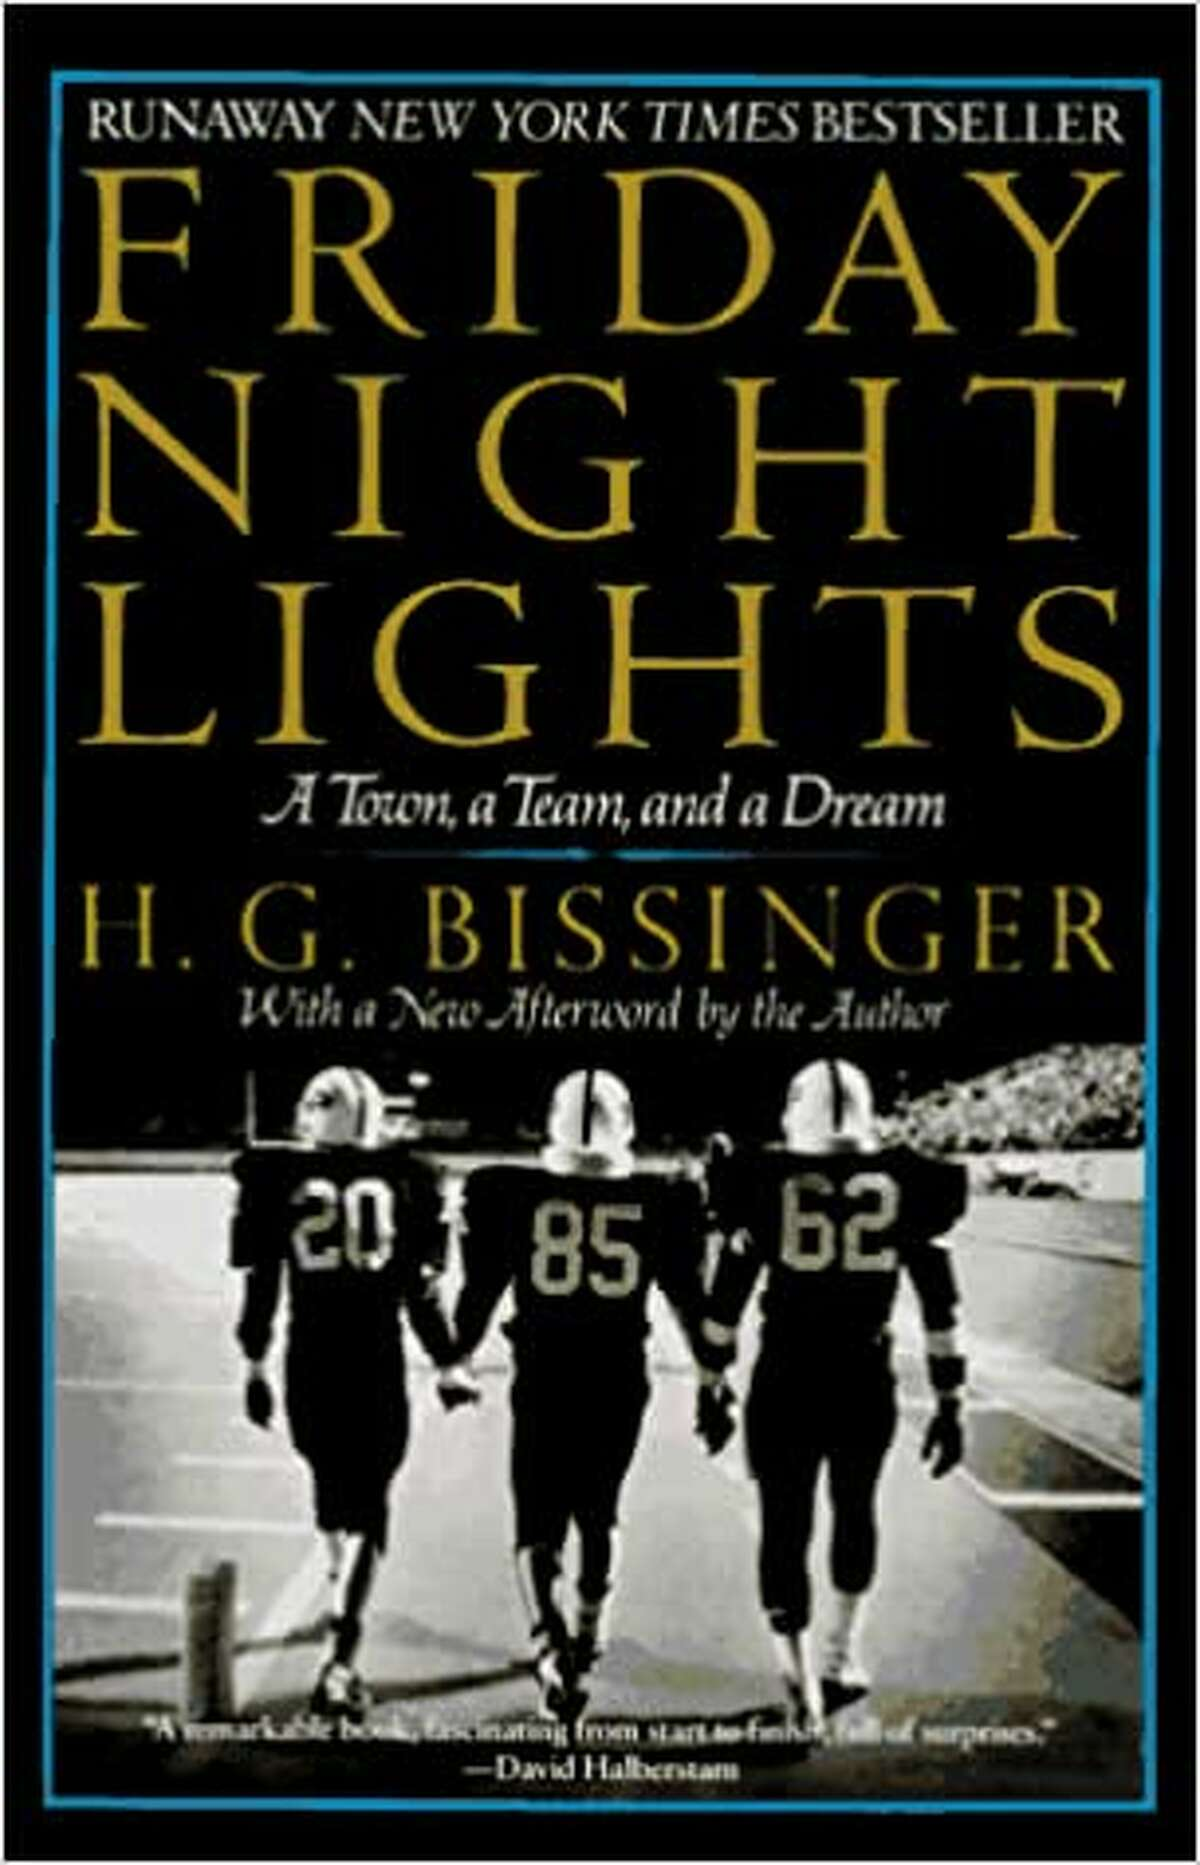 Friday Night Lights: A Town, a Team, and a Dream: Based on the series of the same name, it chronicles the true story of the Odessa, Texas, Panthers. The high school football team, to this day, has the best winning record in Texas history. You can read it on Amazon for less than $10 or watch it on Netflix.